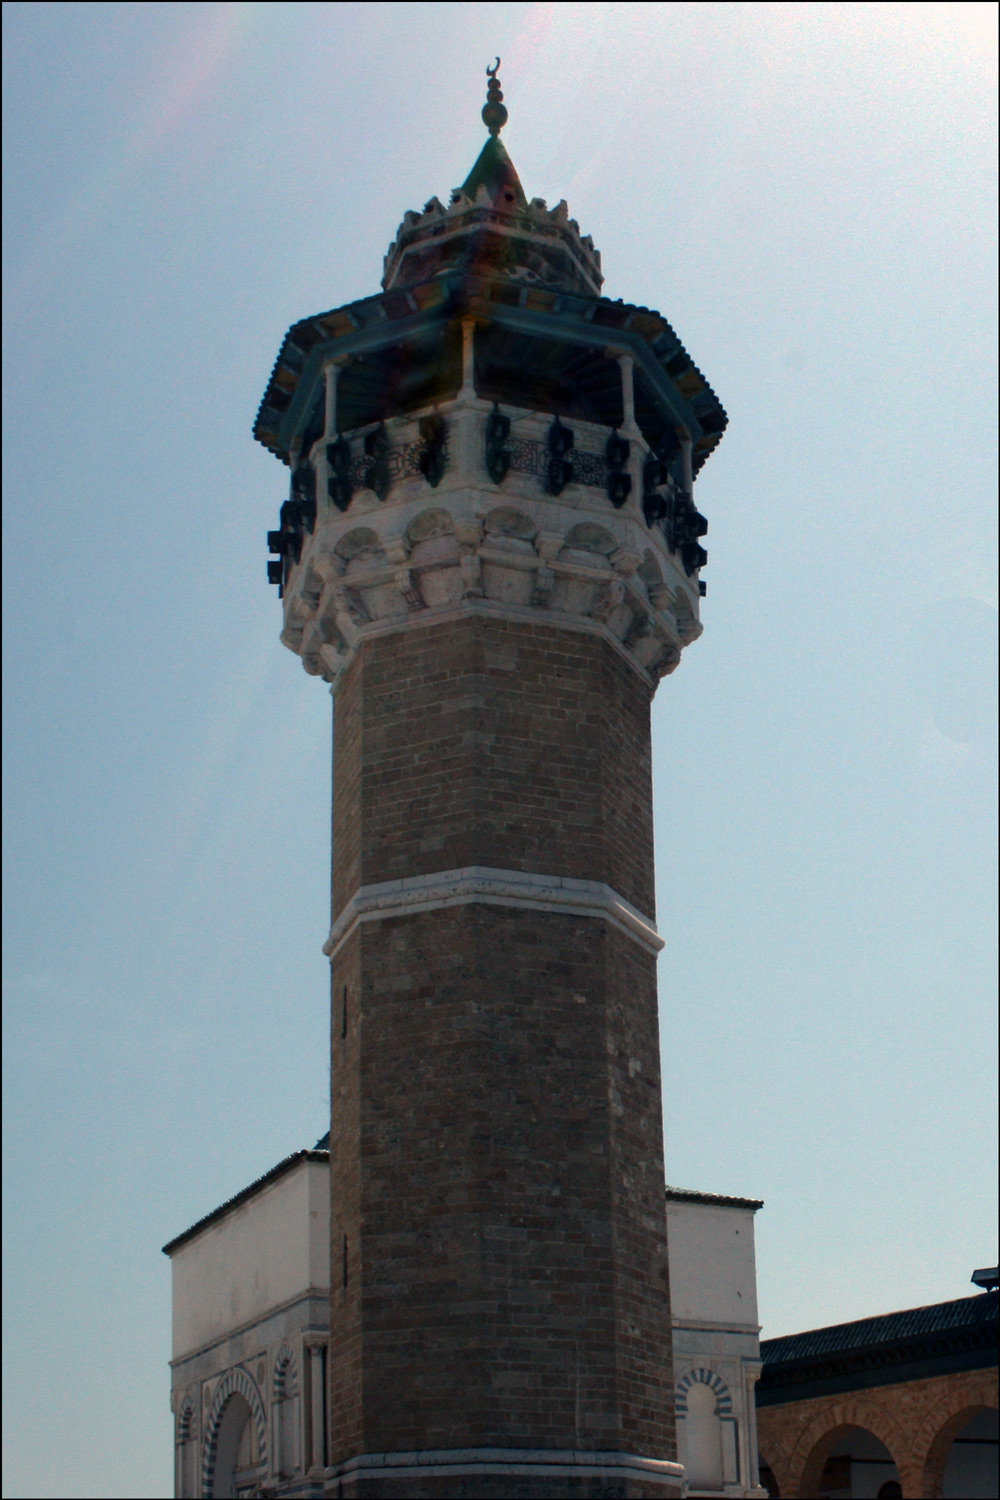 Minaret of Youssef Dey Mosque